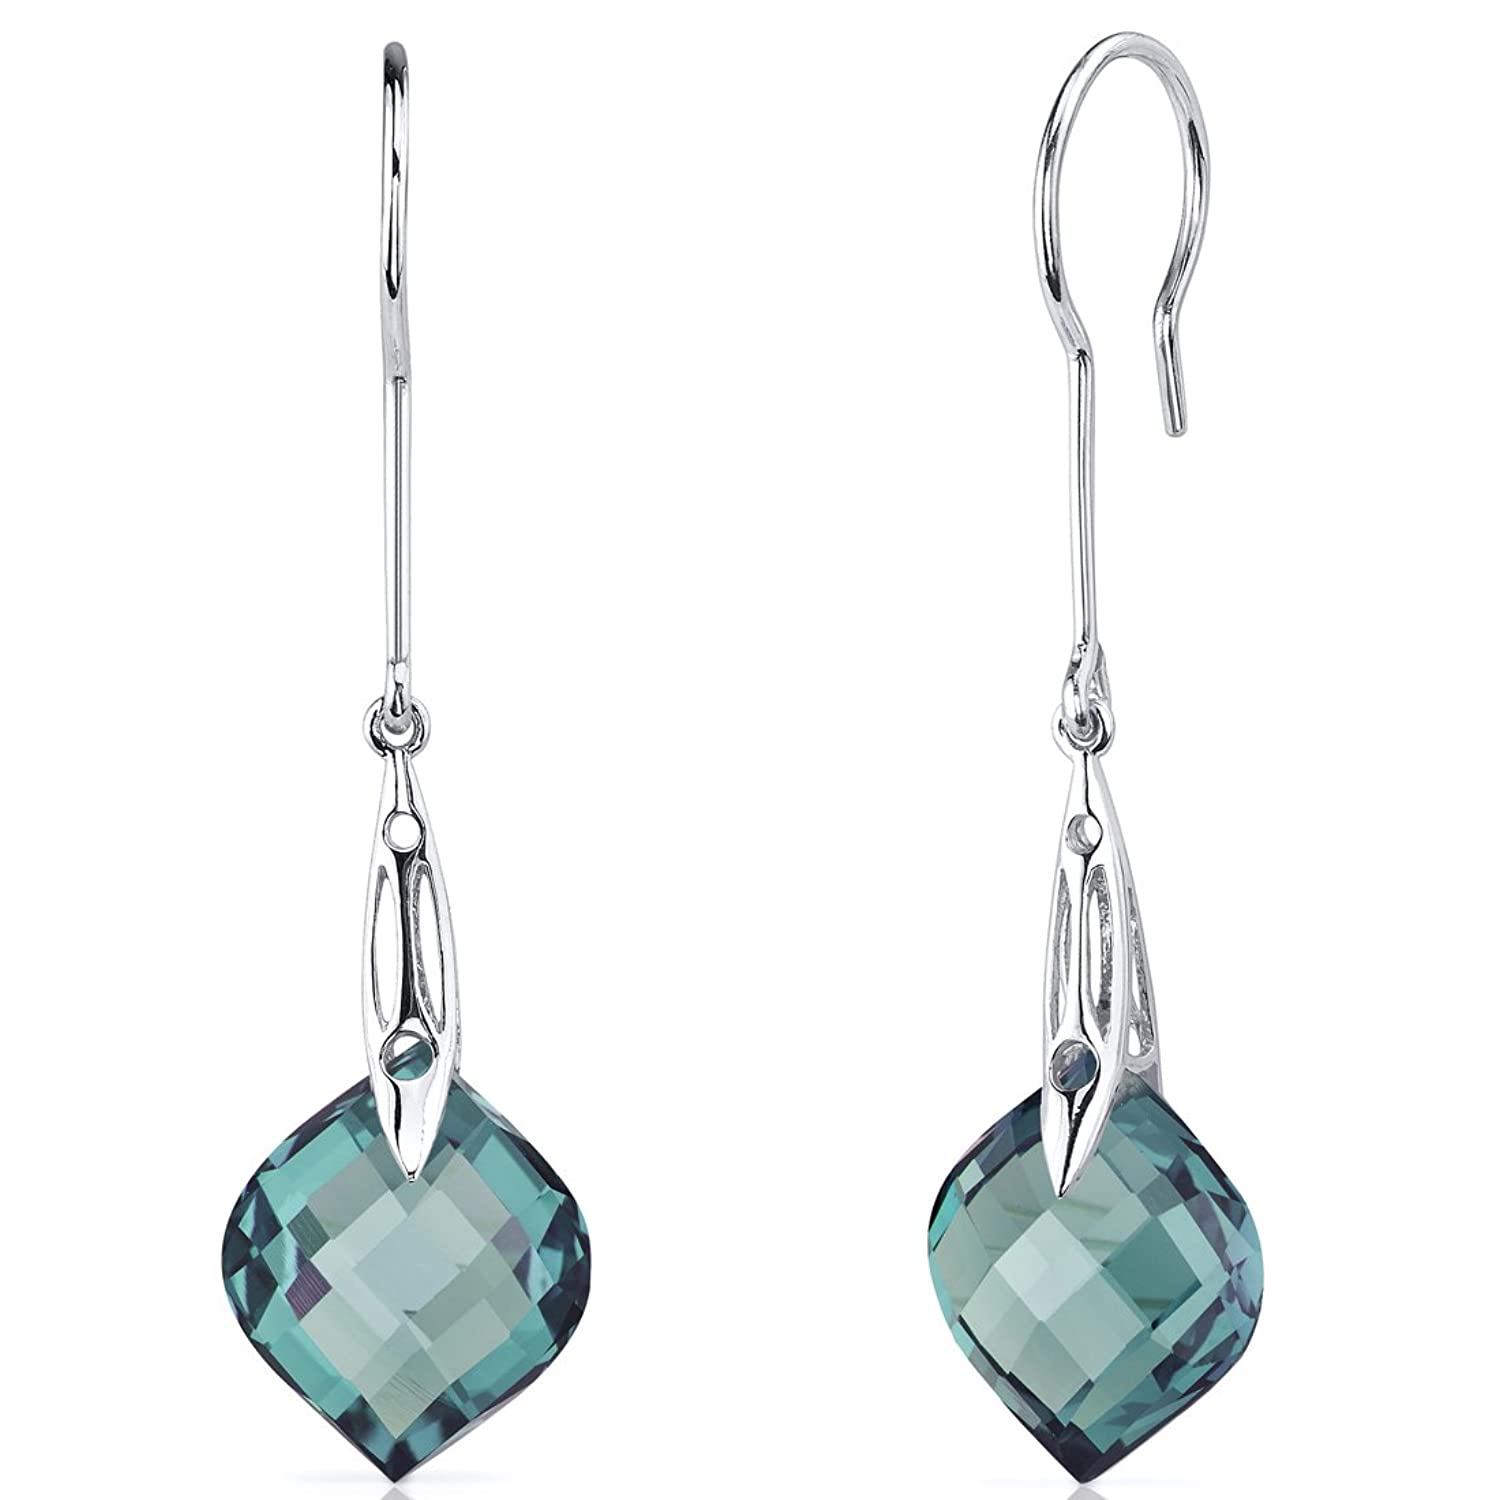 Onion Cut 18.50 Carats Simulated Alexandrite Dangle Earrings Sterling Silver